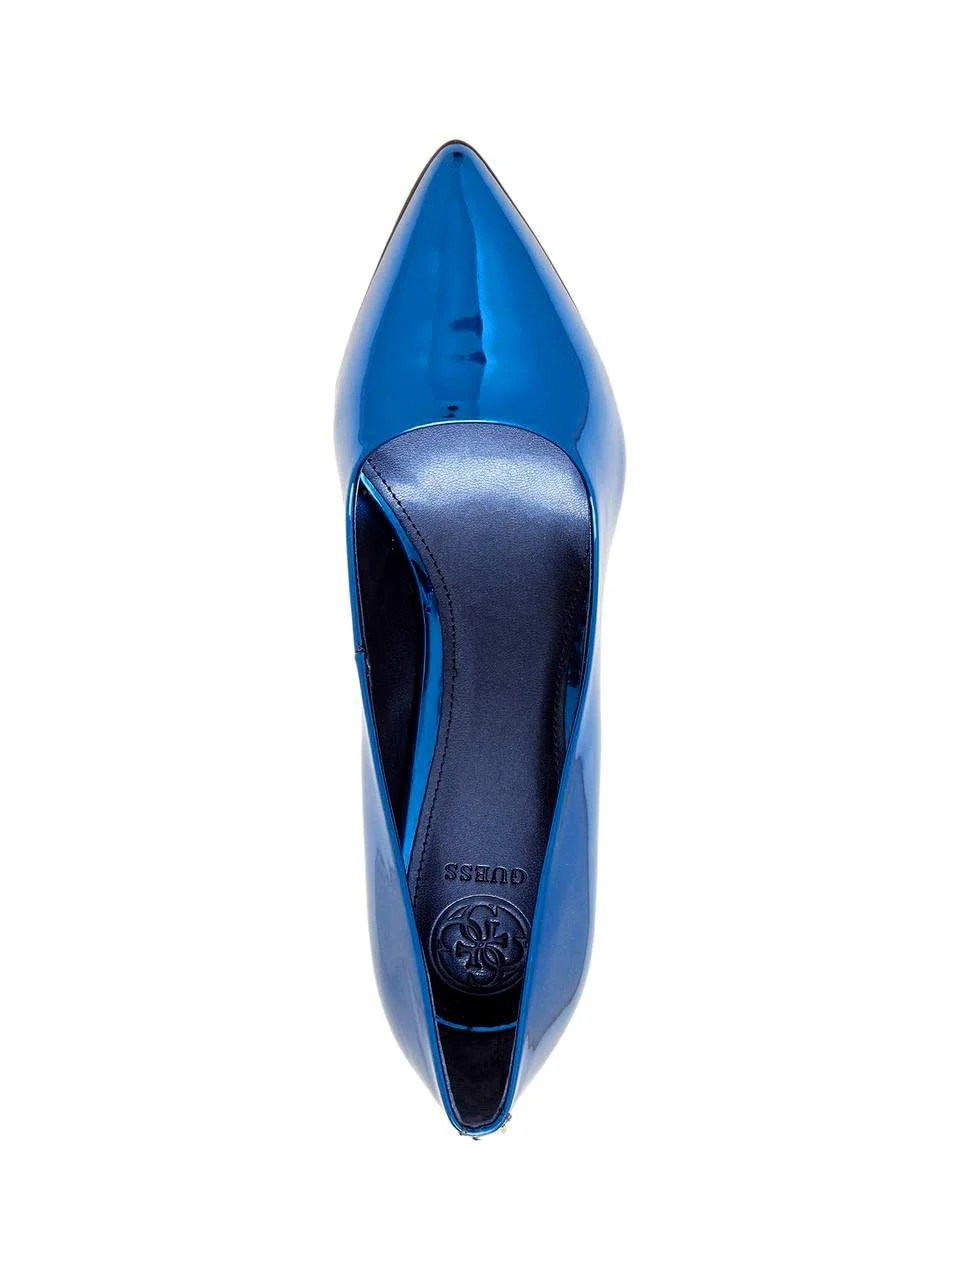 382.295 GUESS Damen Marken-Pumps Blau-Metallic